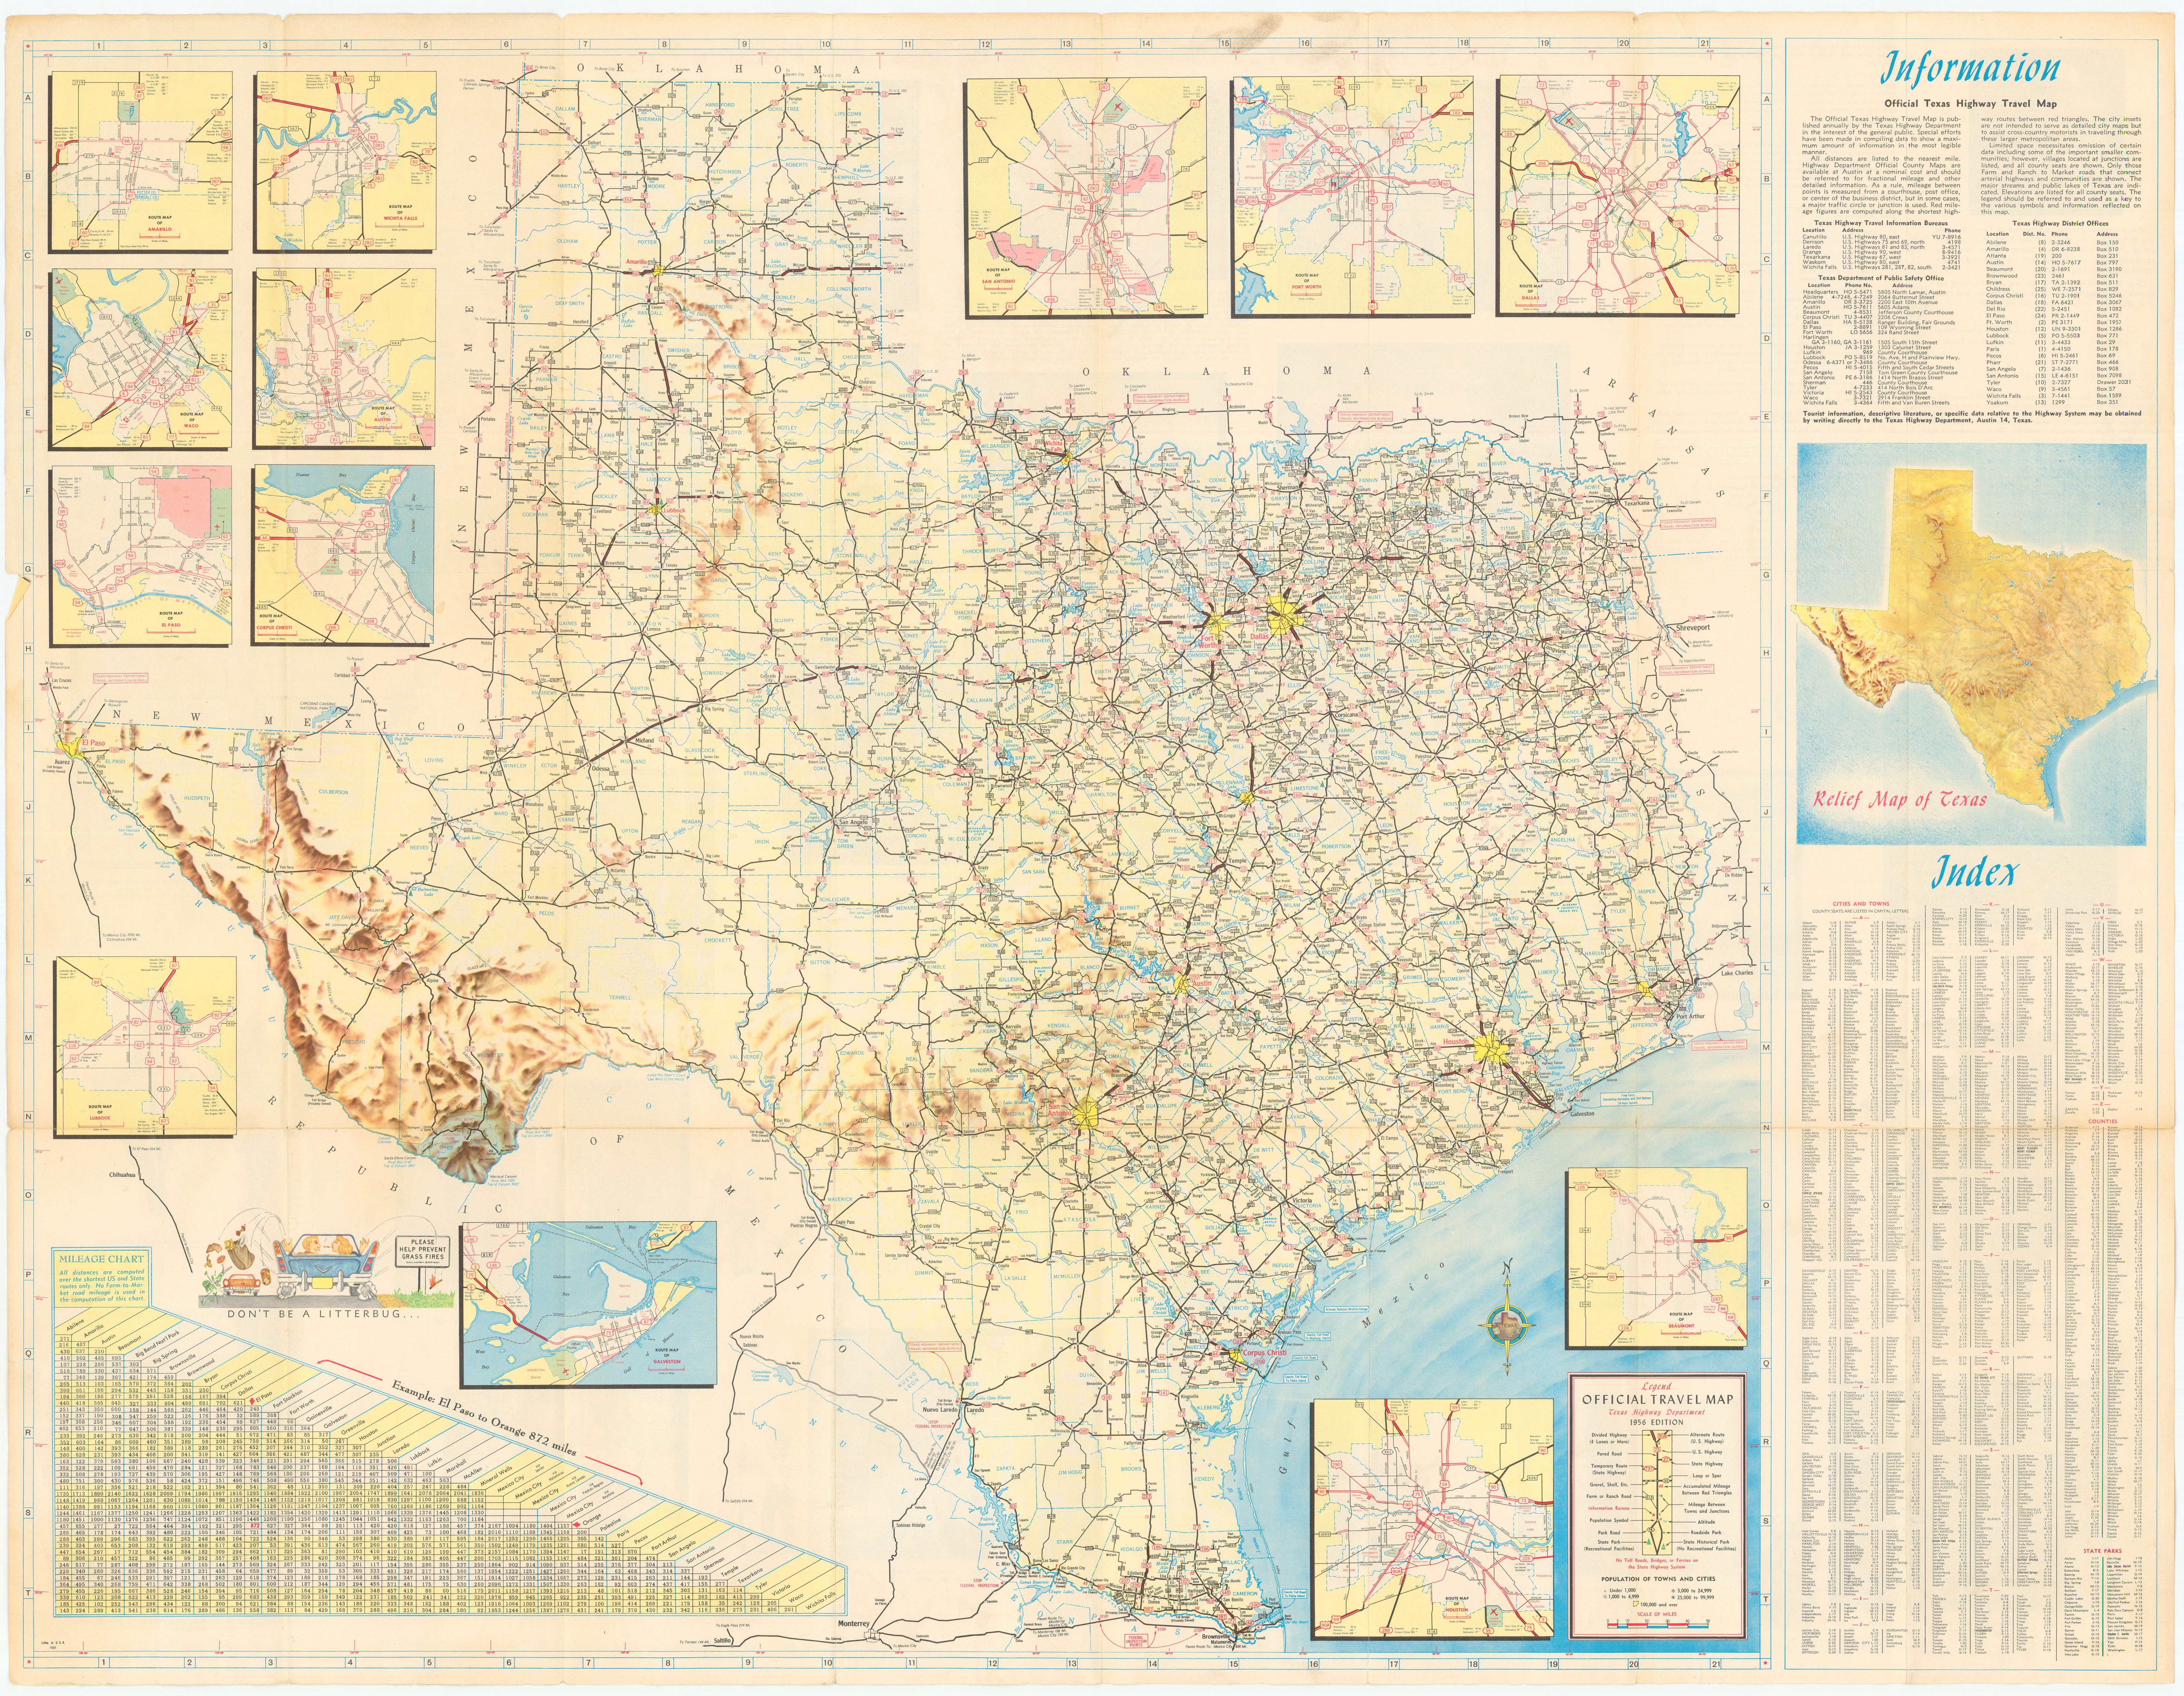 Official Texas Highway Map File:1956 Official Texas Highway Map.   Wikimedia Commons